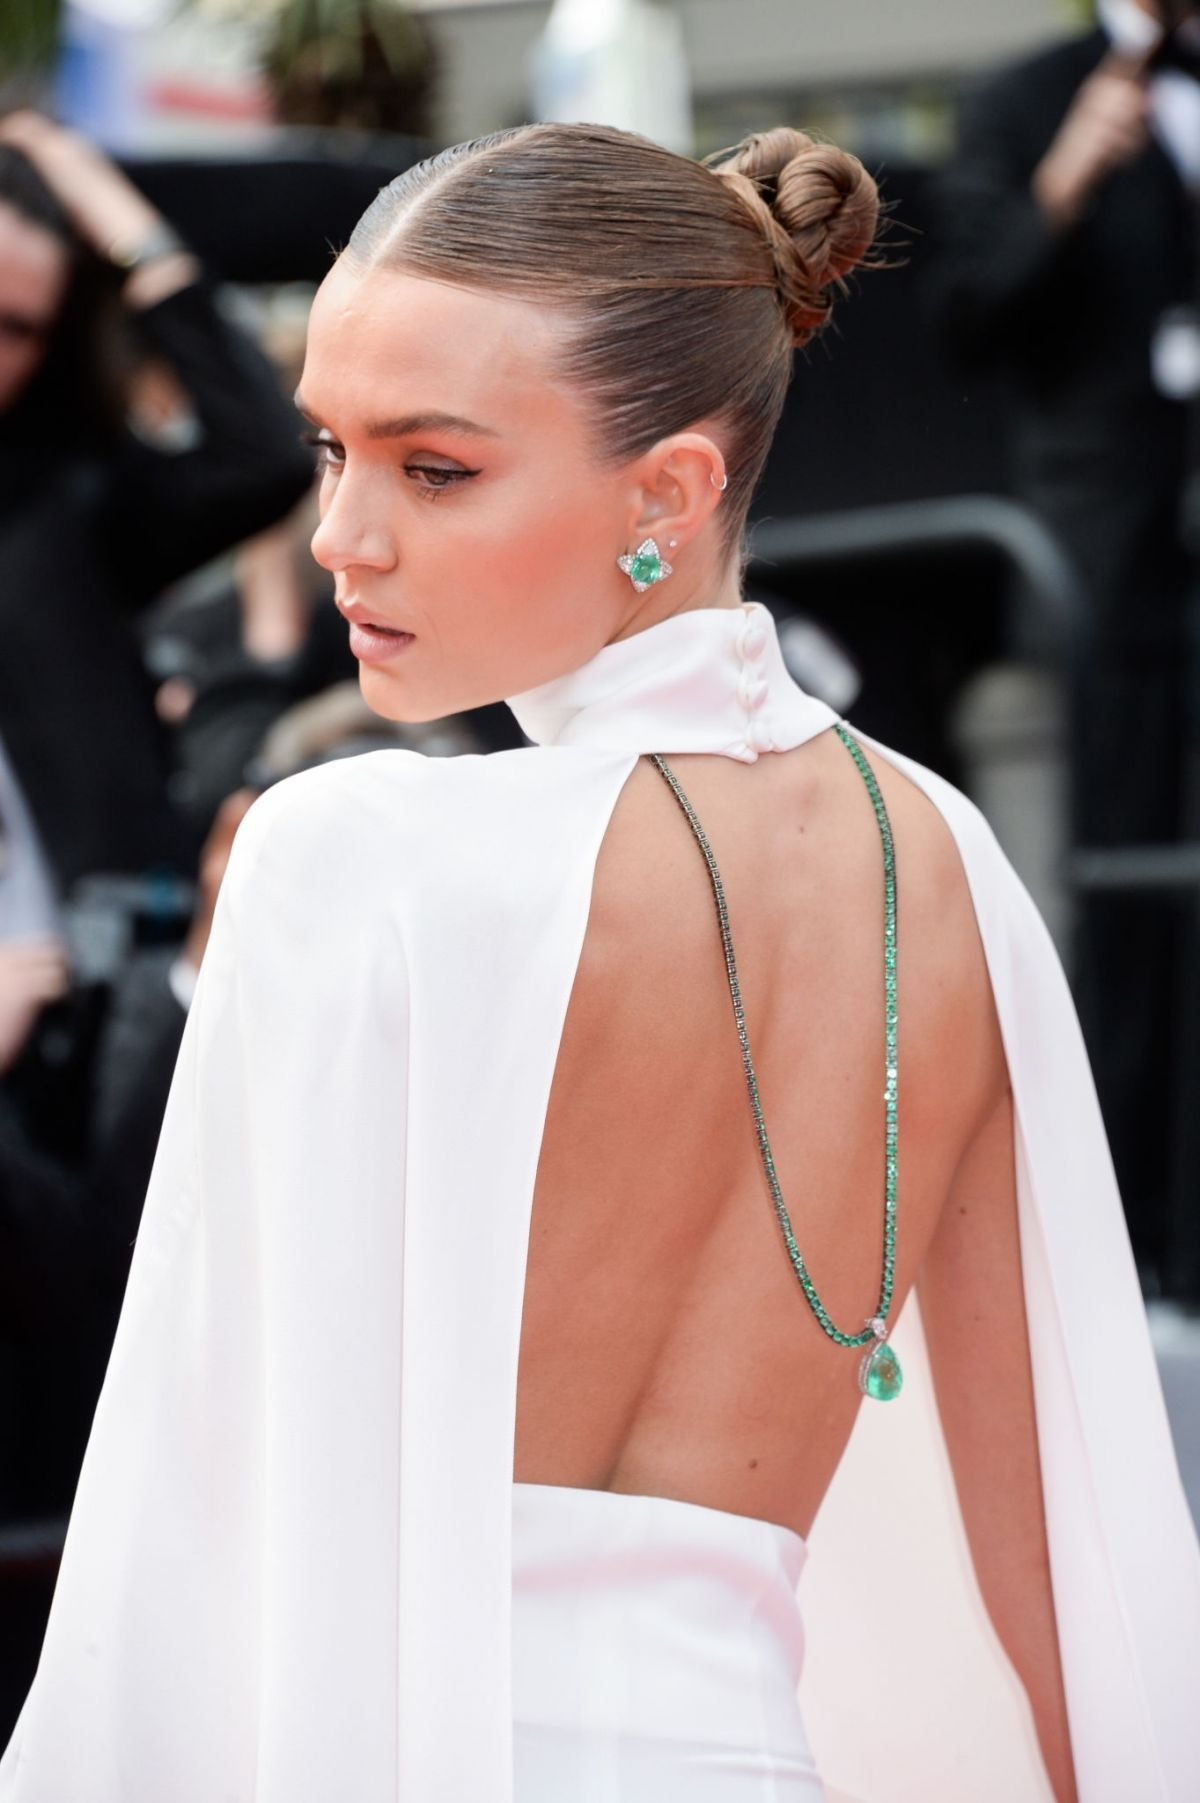 josephine-skriver-at-oh-mercy-screening-72nd-annual-cannes-film-festival-13.jpg